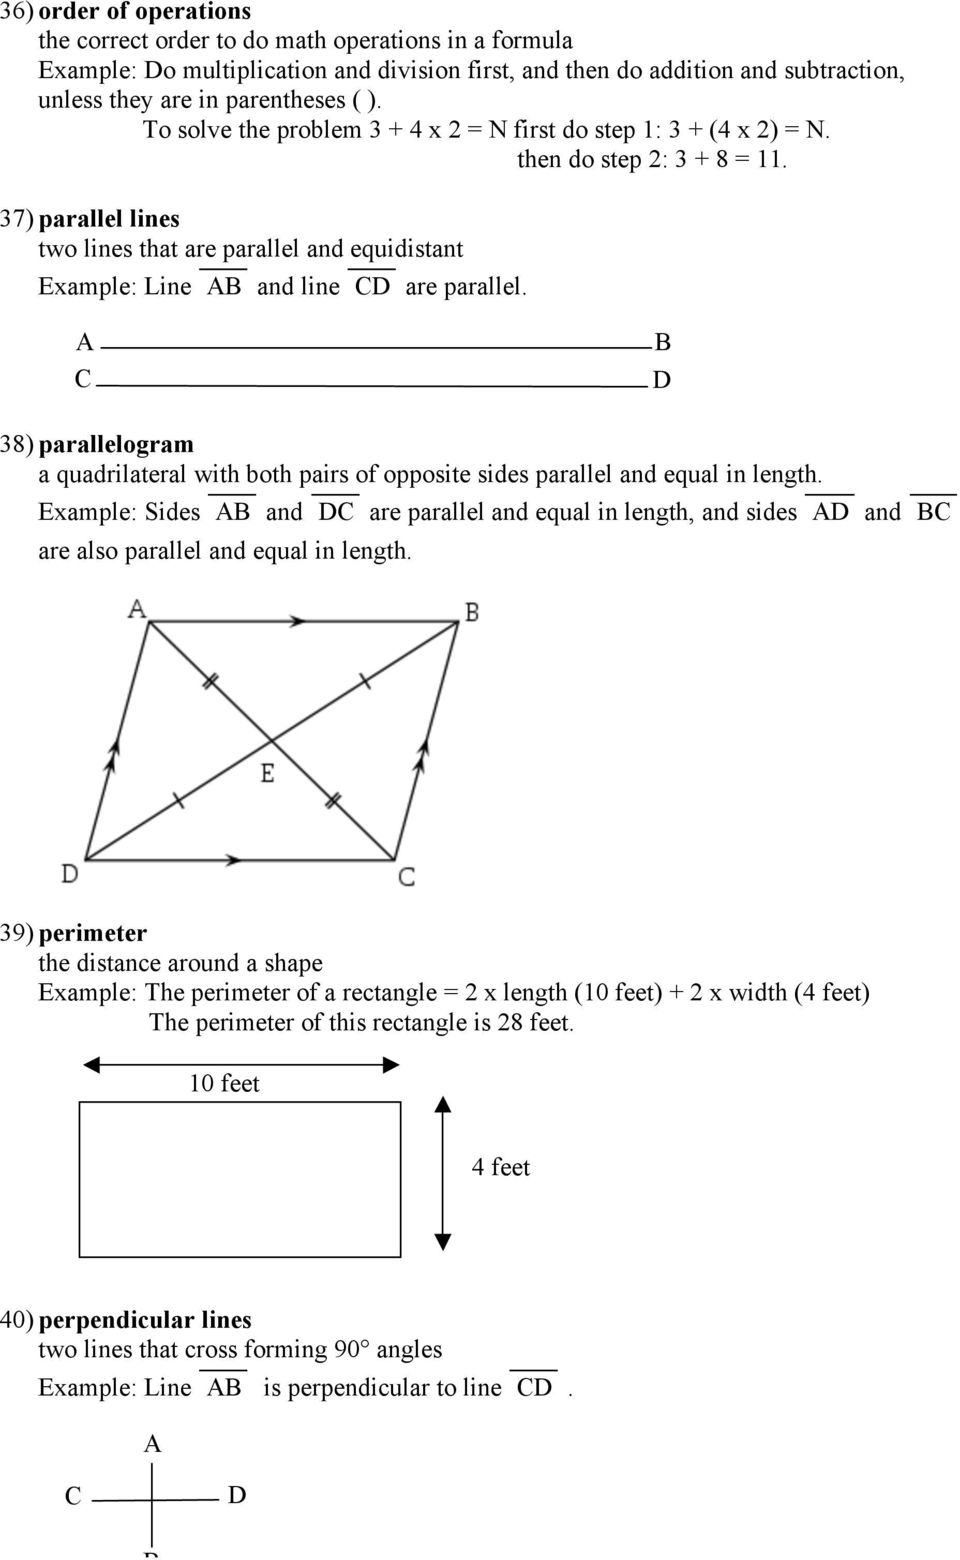 38) parallelogram a quadrilateral with both pairs of opposite sides parallel and equal in length.